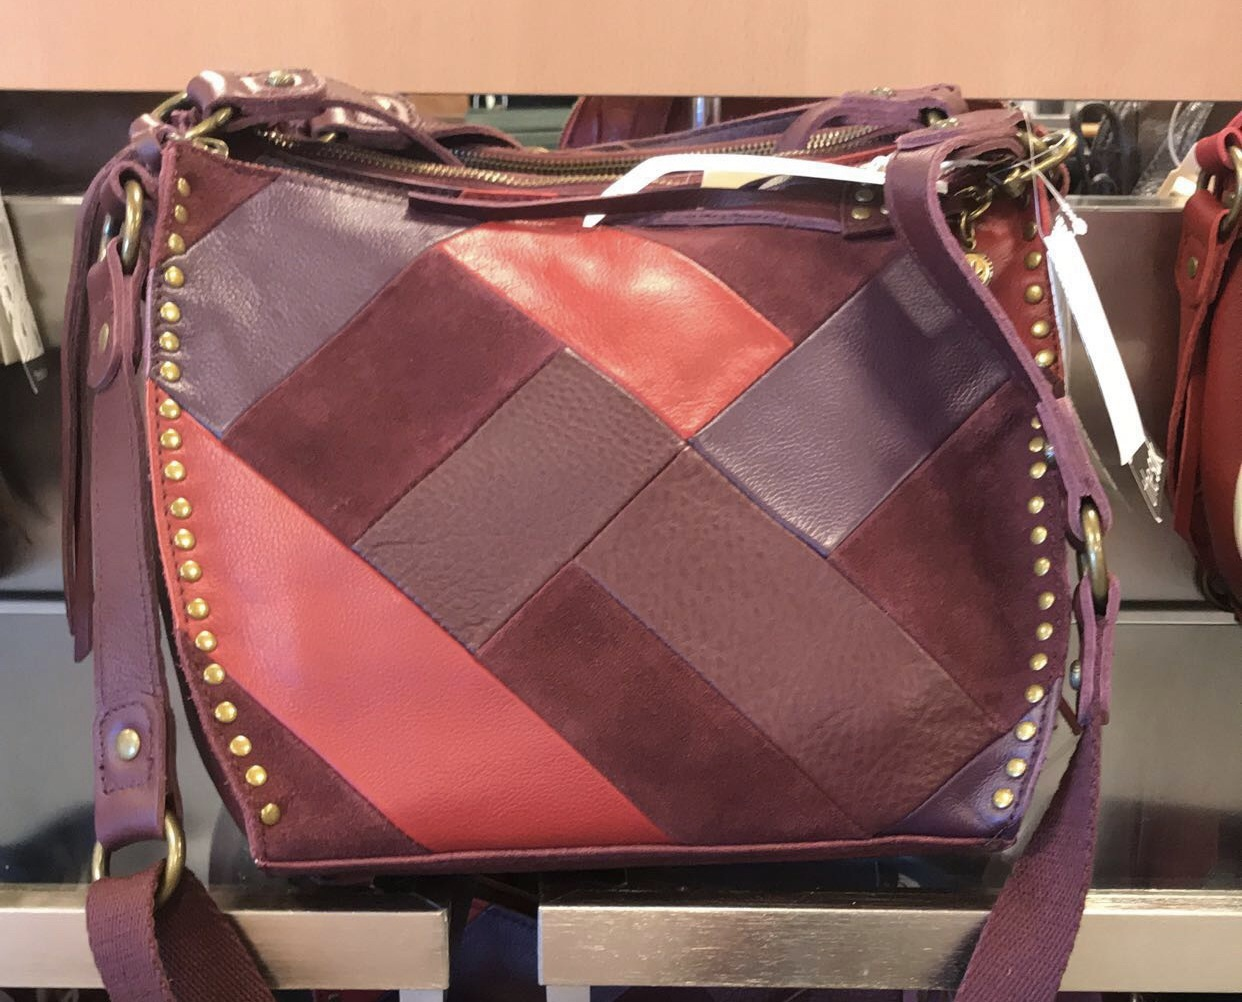 bag burgundy macy's purse red bag bags and purses purse satchel bag suede patched soft leather leather bag purple